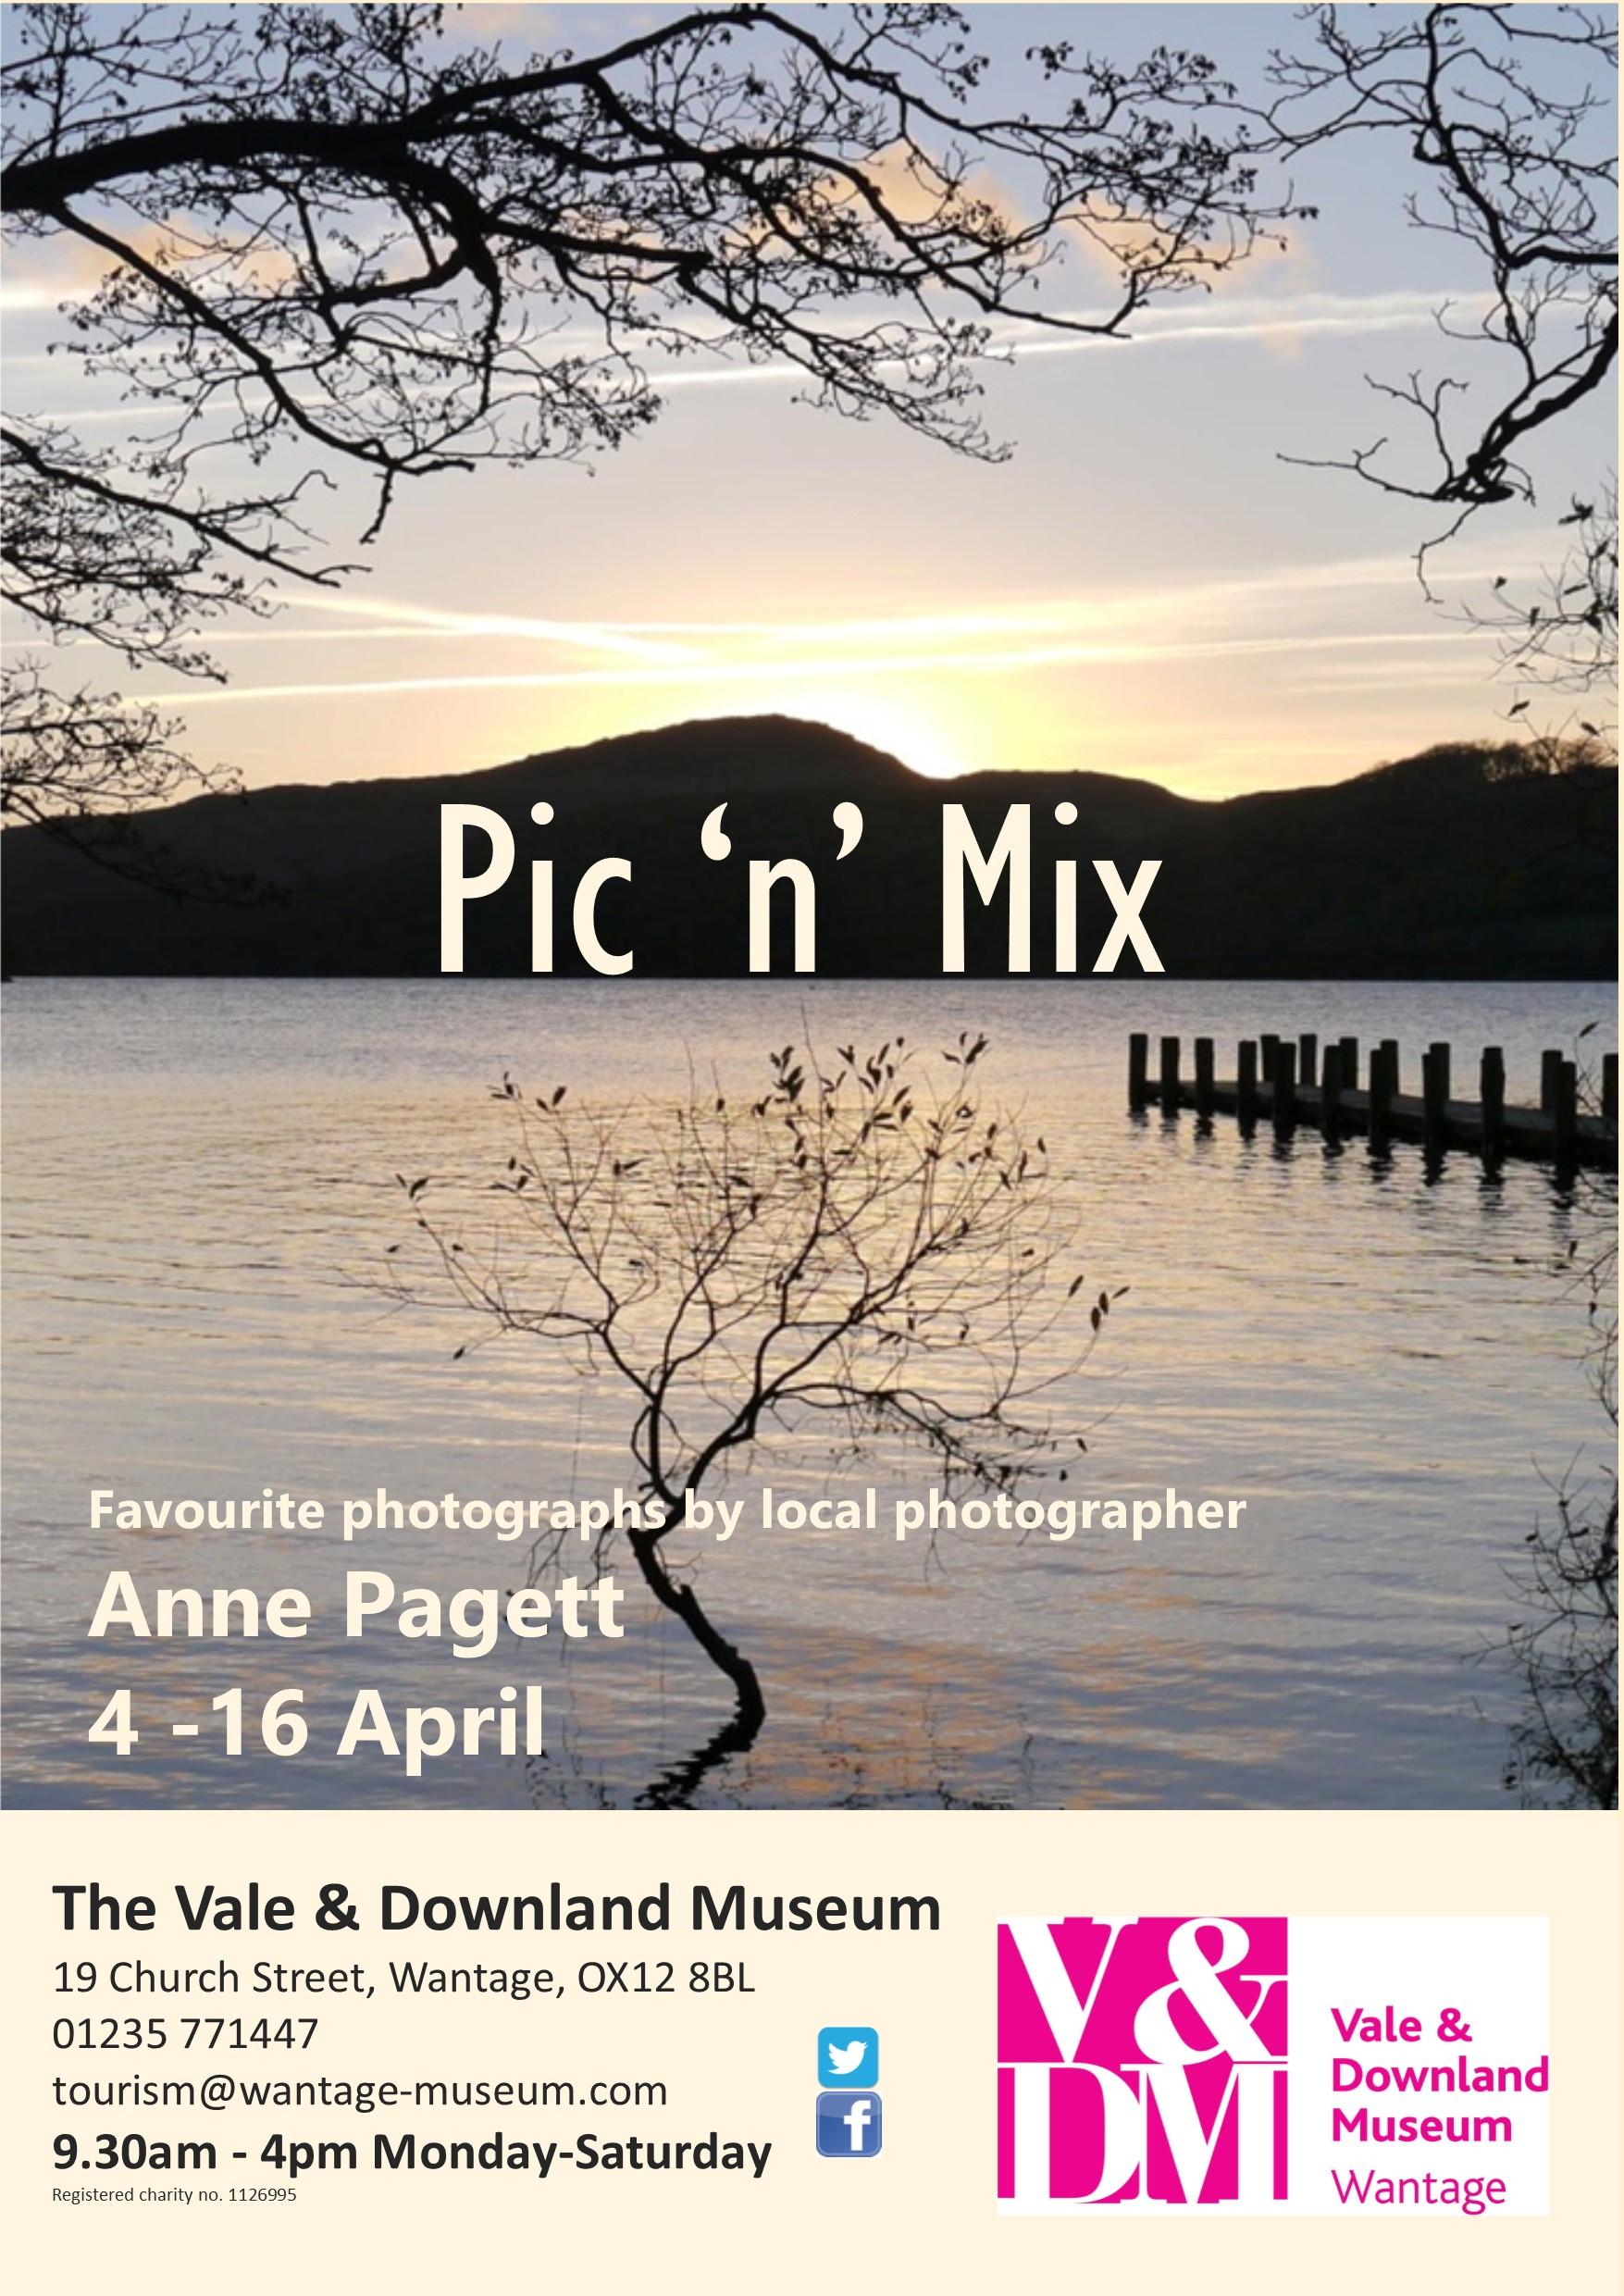 Exhibition of photographs by Anne Pagett at Vale & Downland Museum